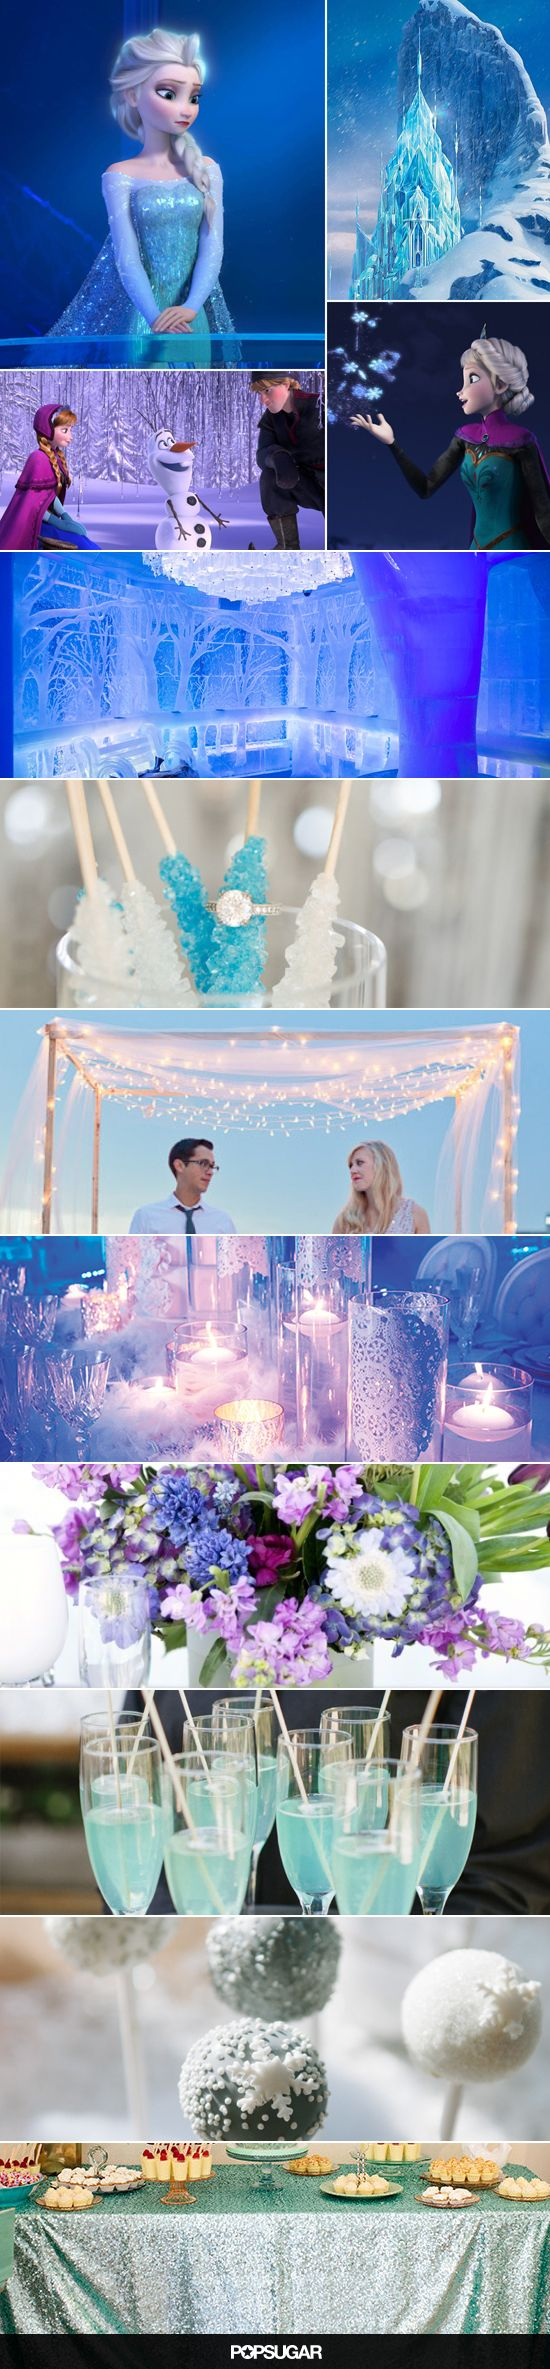 Wedding inspiration and ideas from Disney's Frozen!